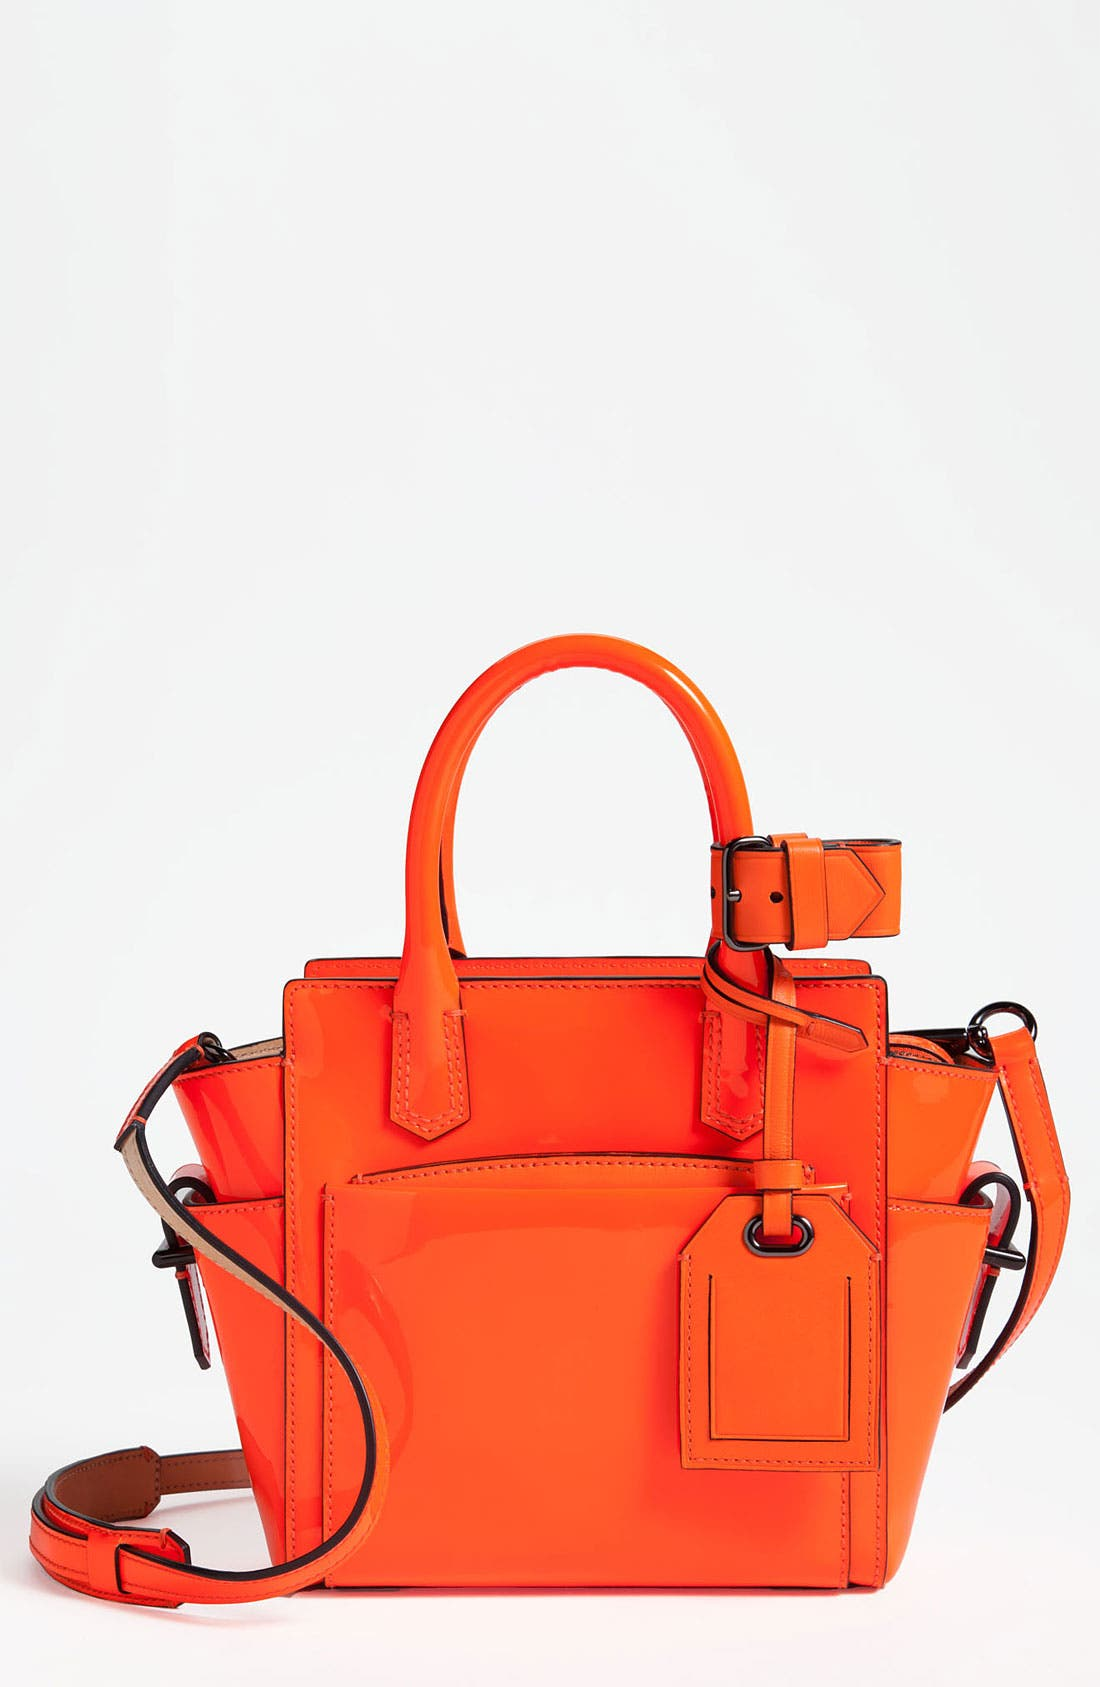 Alternate Image 1 Selected - Reed Krakoff 'Atlantique - Micro' Patent Leather Satchel